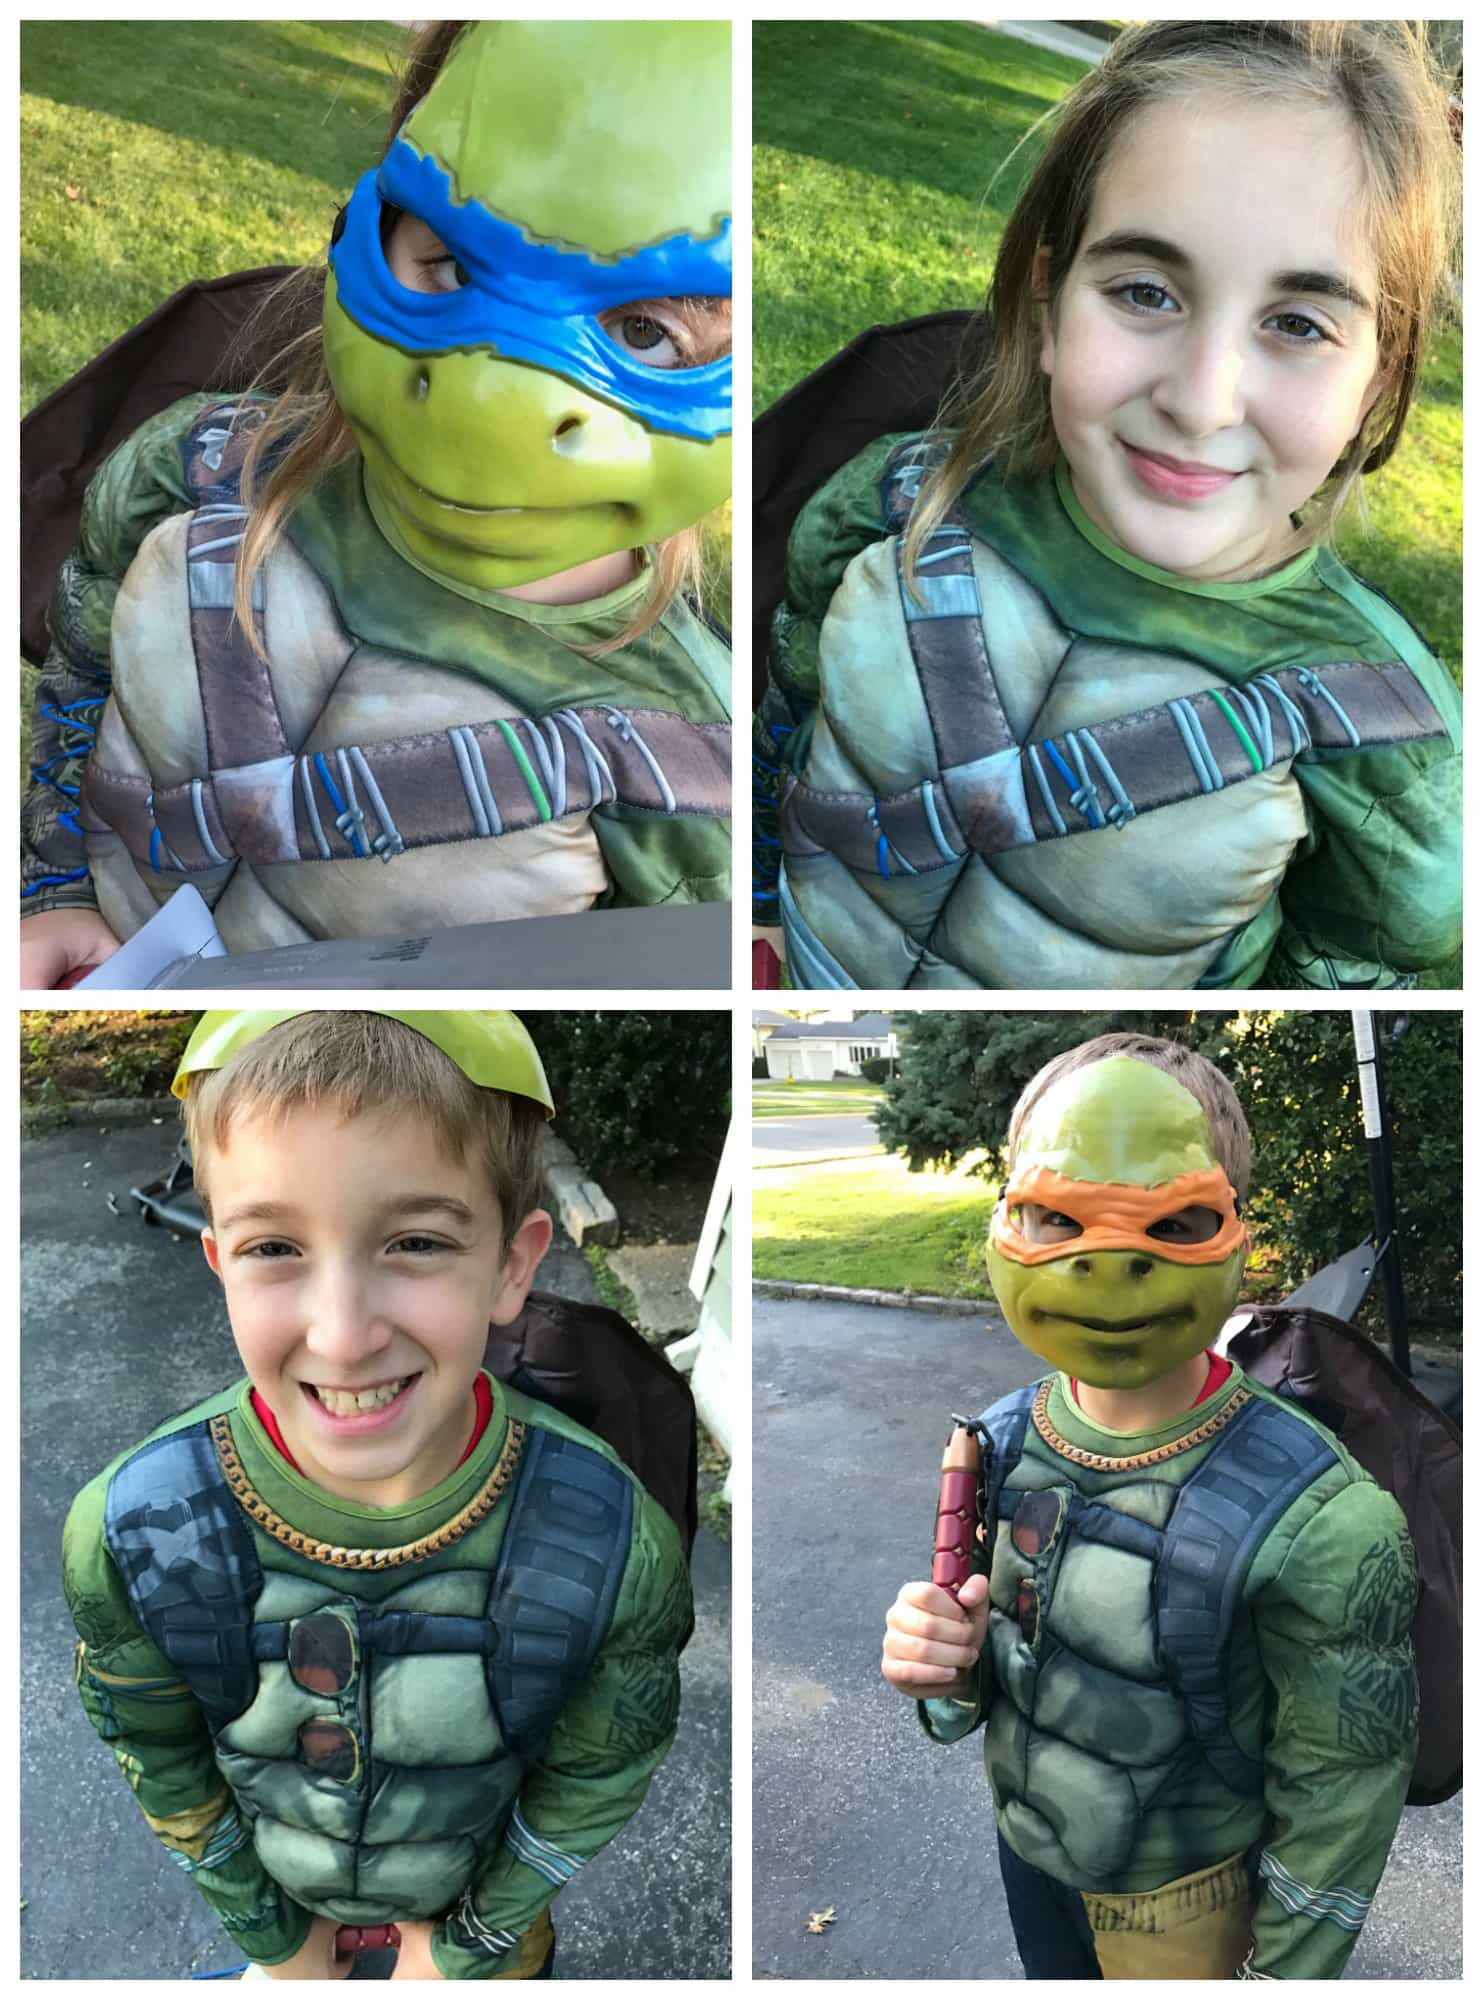 Teenage Mutant Ninja Turtle Halloween Costumes For Everyone #Target #TMNT